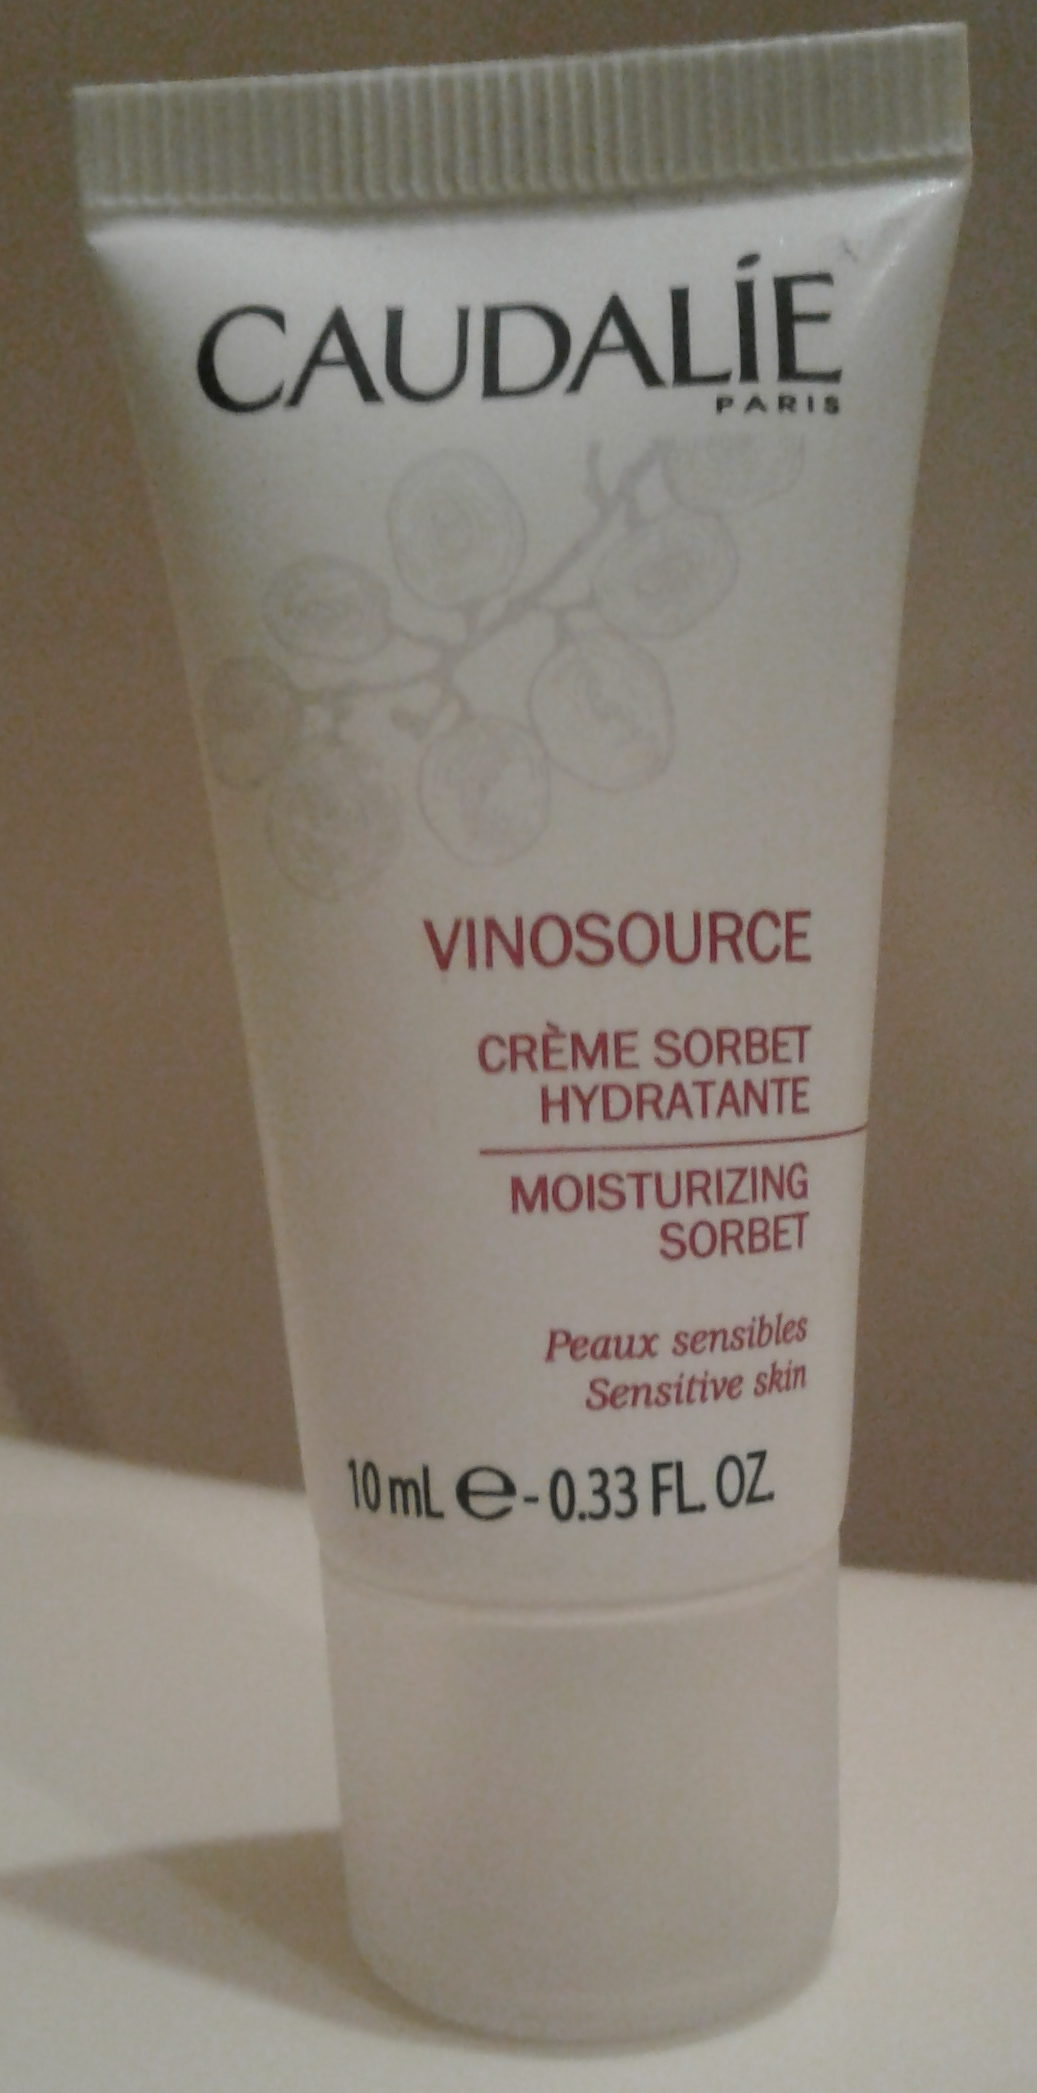 Vinosource - Product - fr